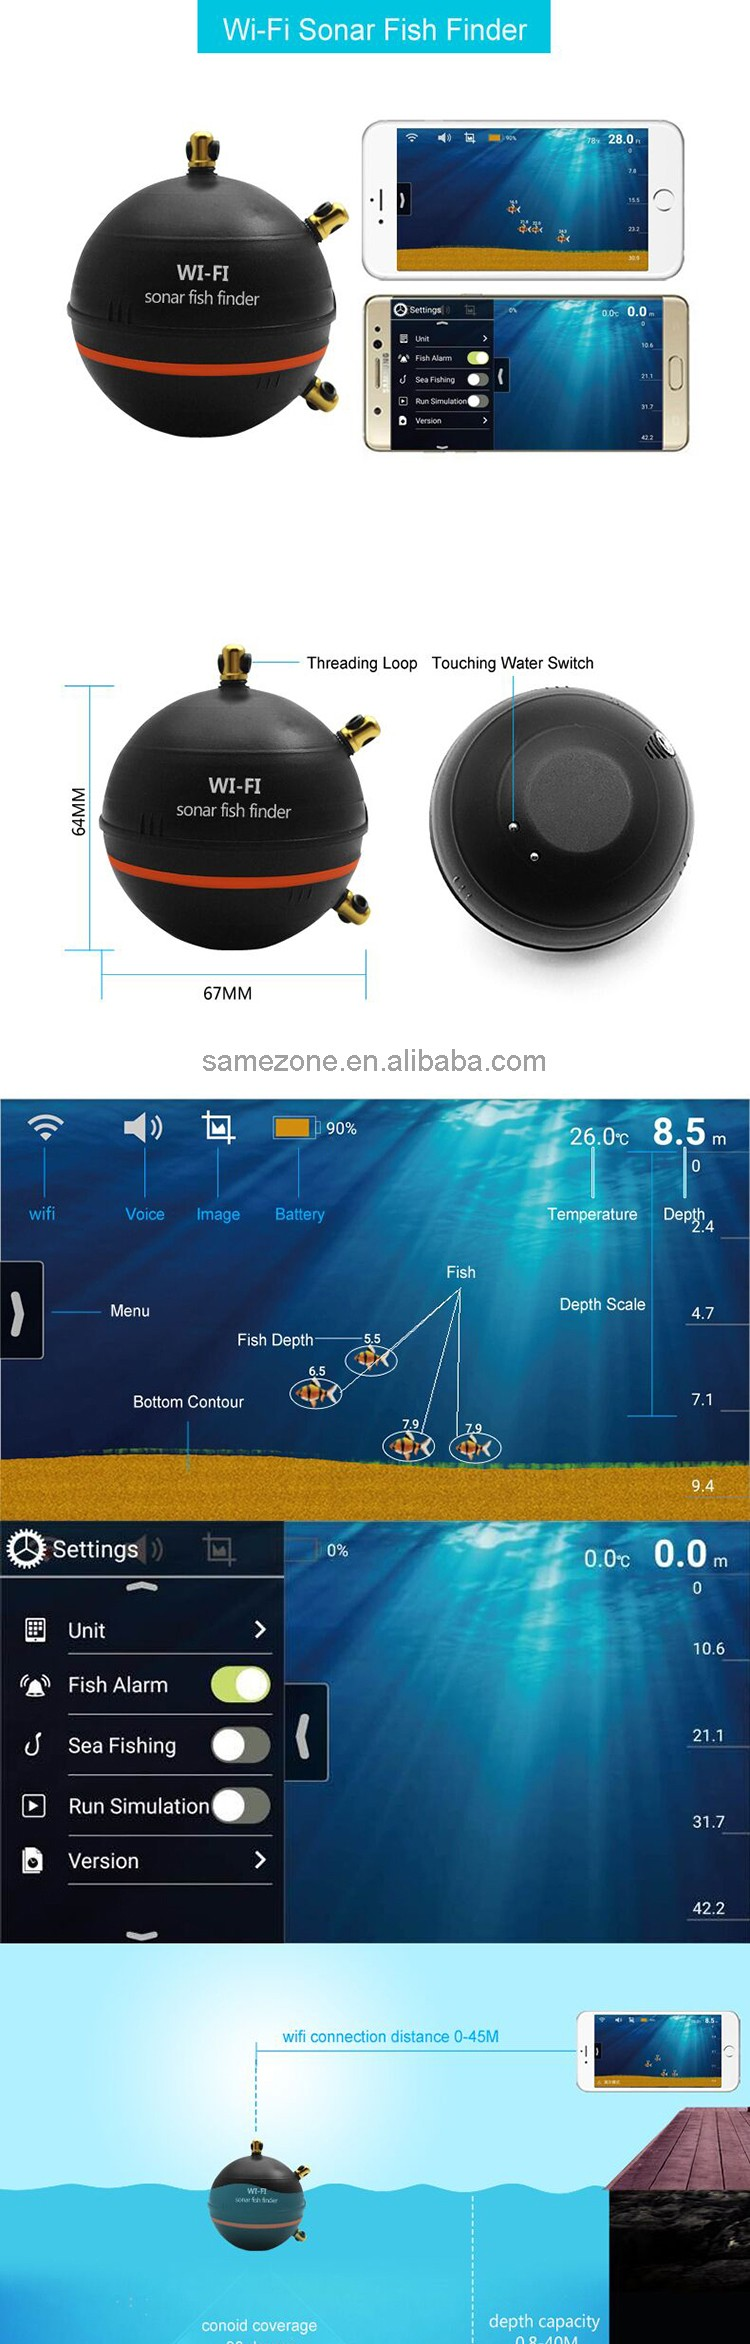 Wireless sensor sonar fish finder with wifi wlan buy for Wifi fish finder